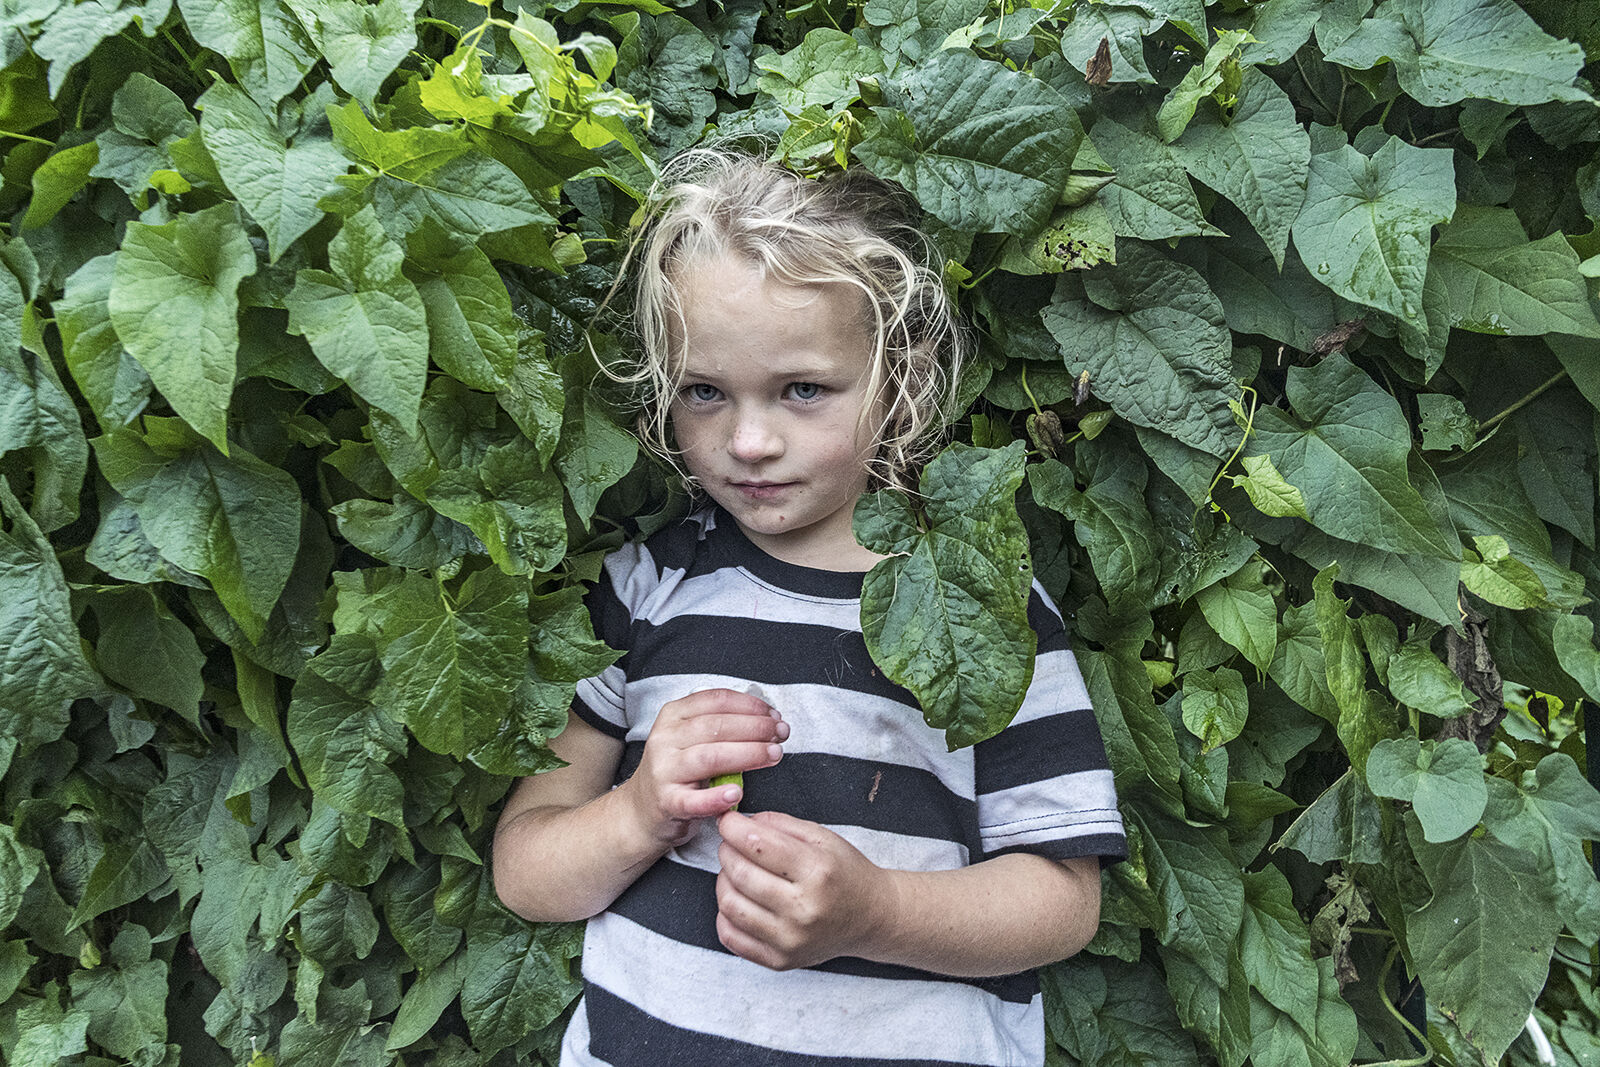 Nikita Holding Bindweed Flower, Tipperary, Ireland 2019